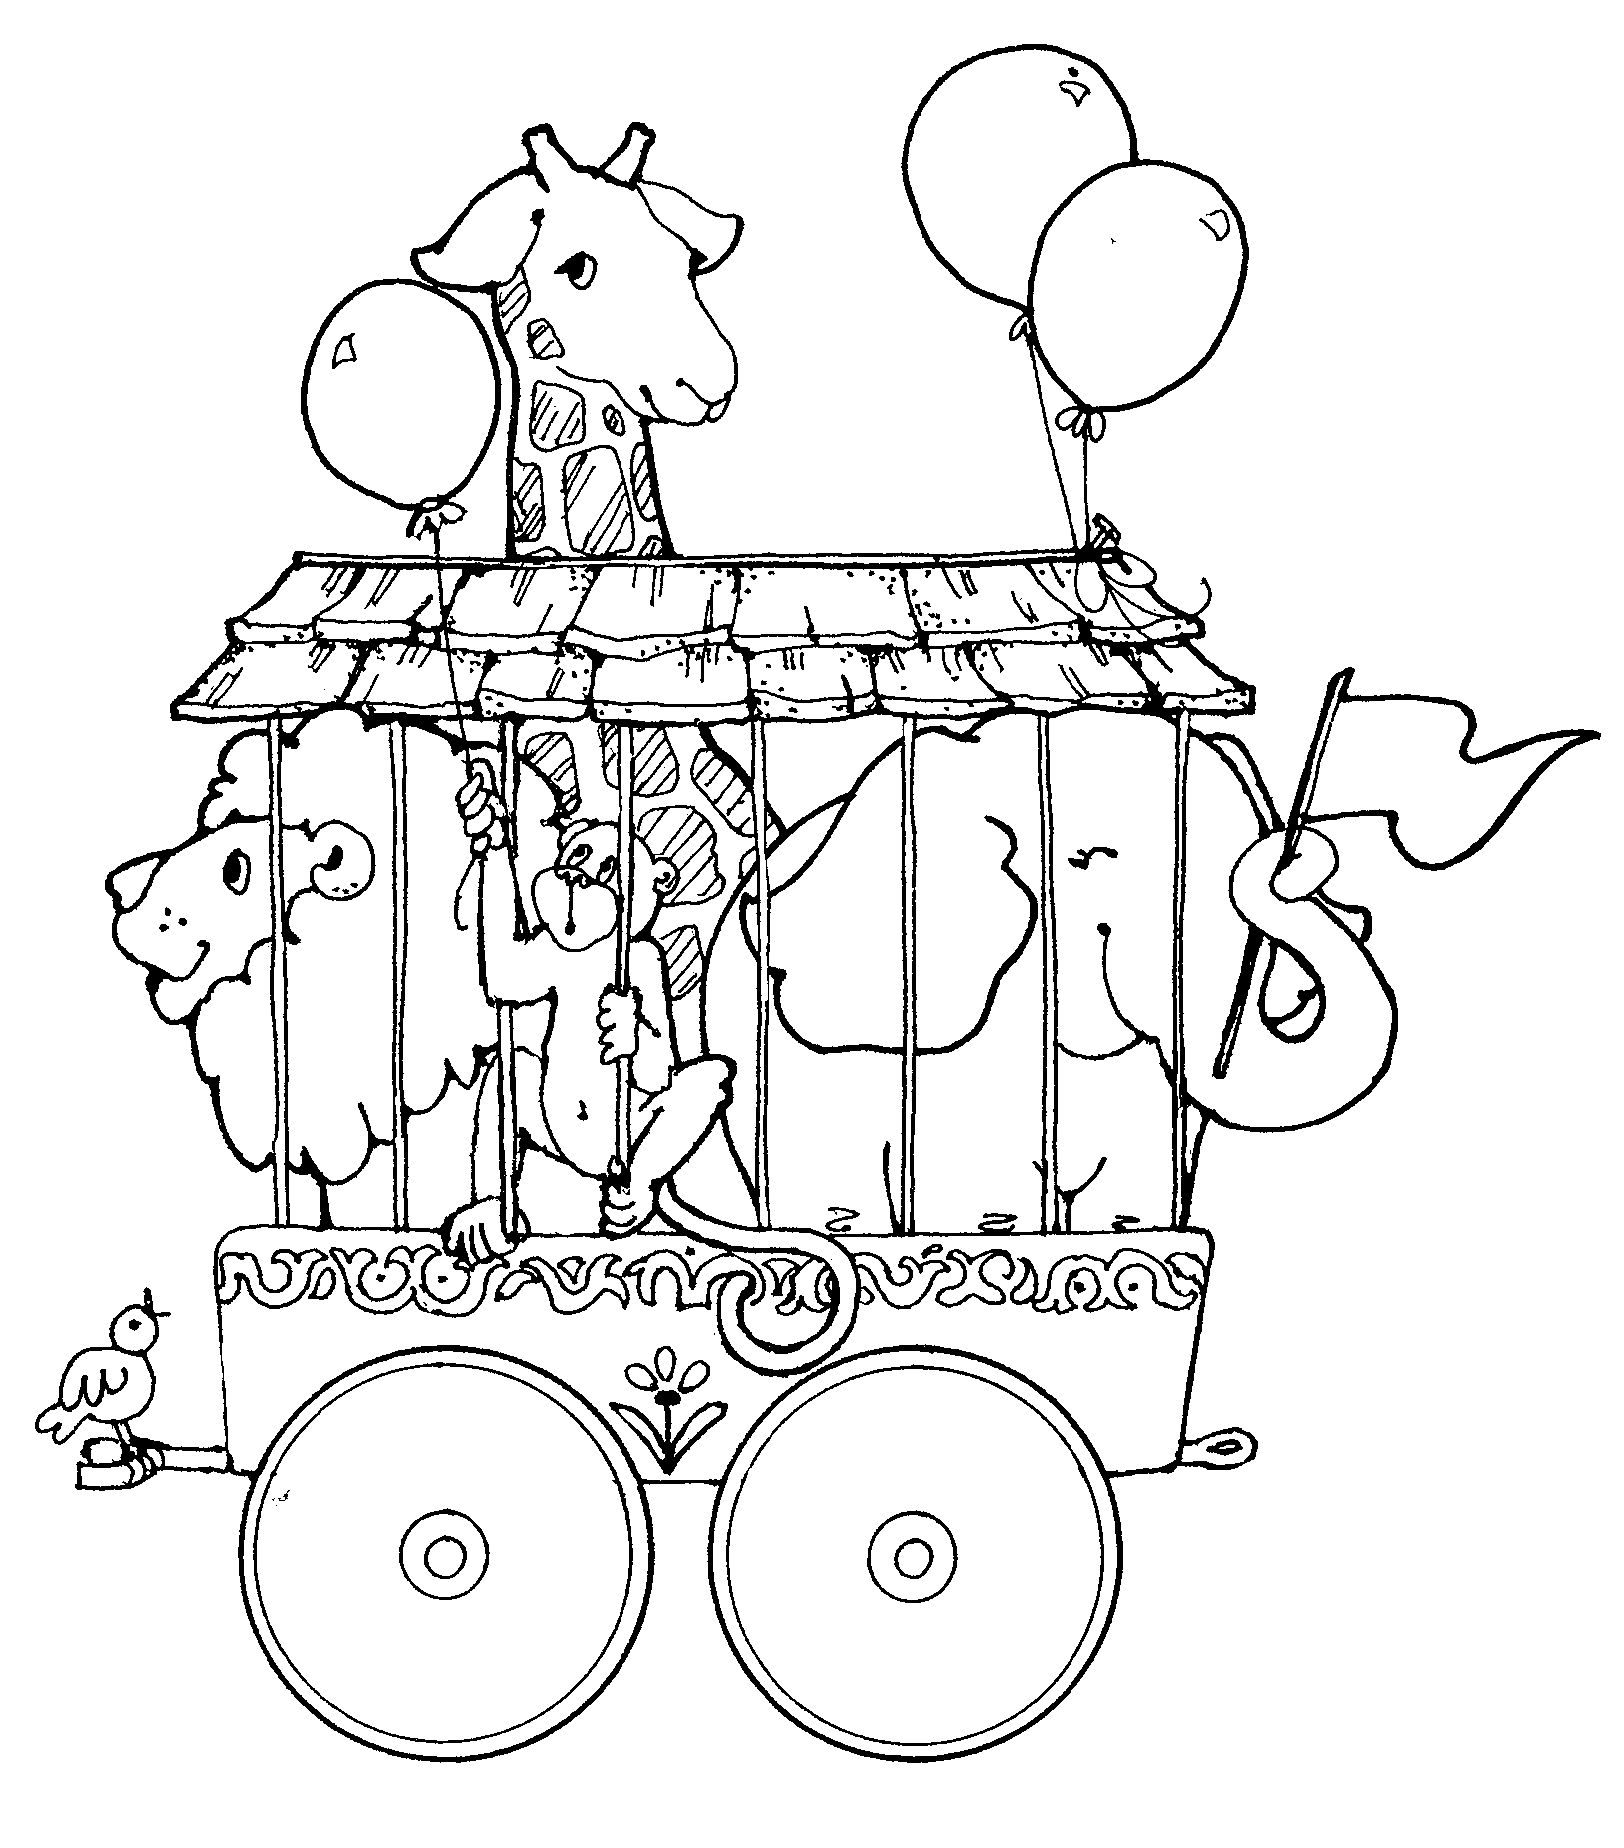 circus train with giraffe lion and elephant coloring page train